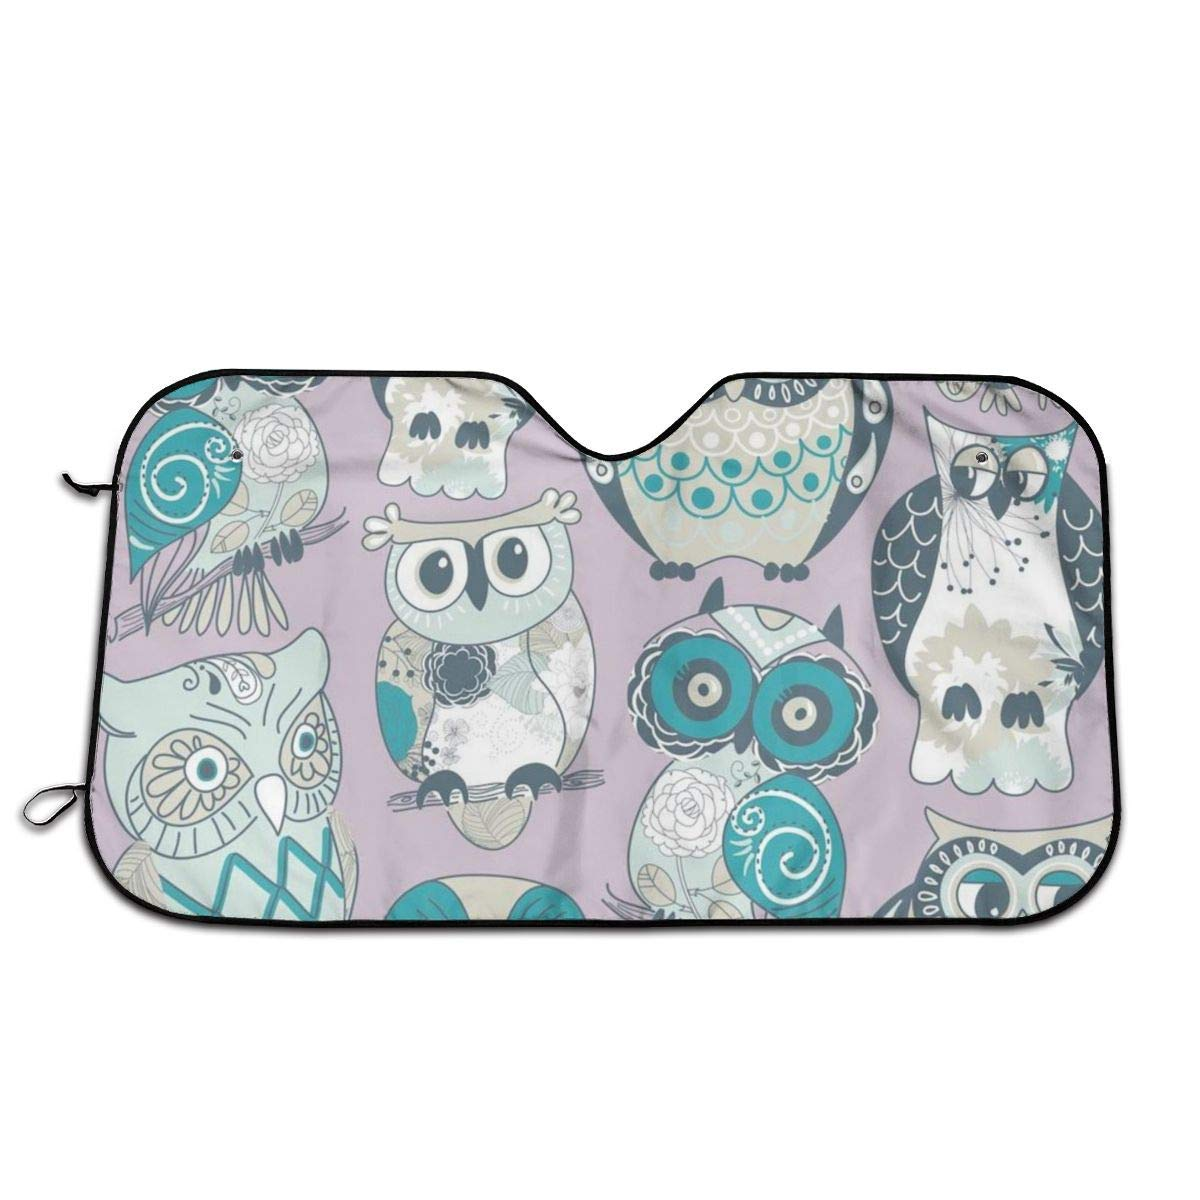 Owls Windshield Sun Shade Car Windows UV Ray Reflector Outdoor Vehicle Accessories by ChanFi